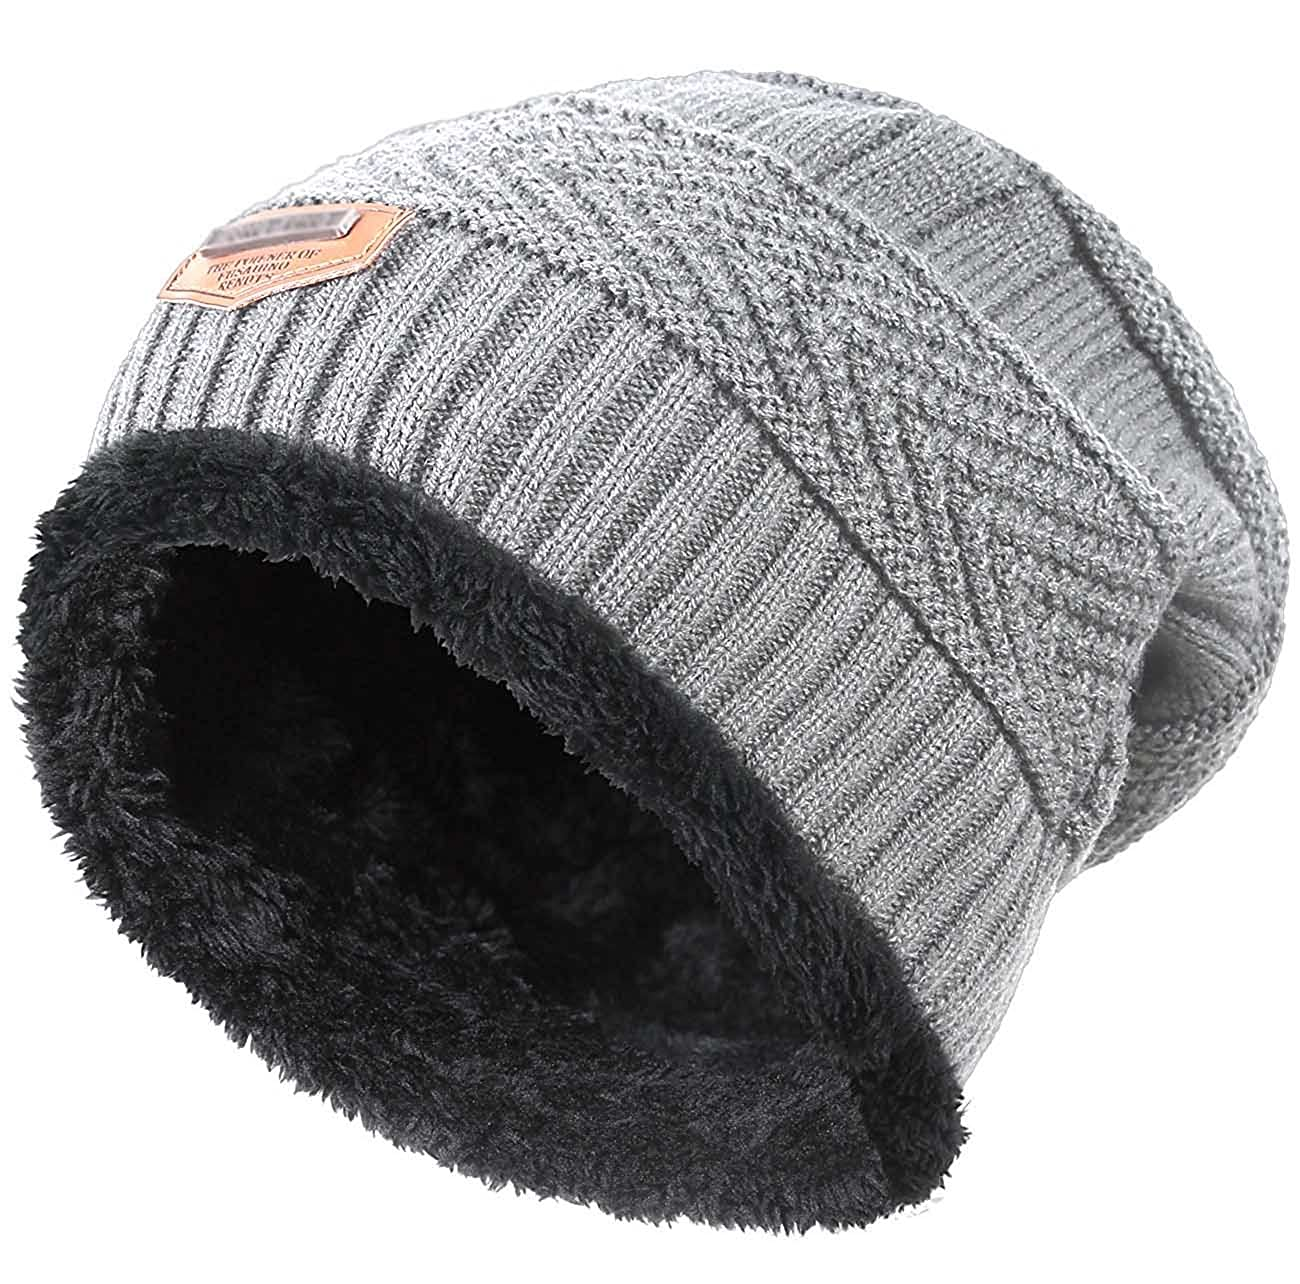 b939df20079 Amazon.com  Winter Hat for Boys Girls Kids (5-14 Years) Slouchy Beanie  Windproof Warm Knit Snow HINDAWI Skull Cap Grey  Clothing